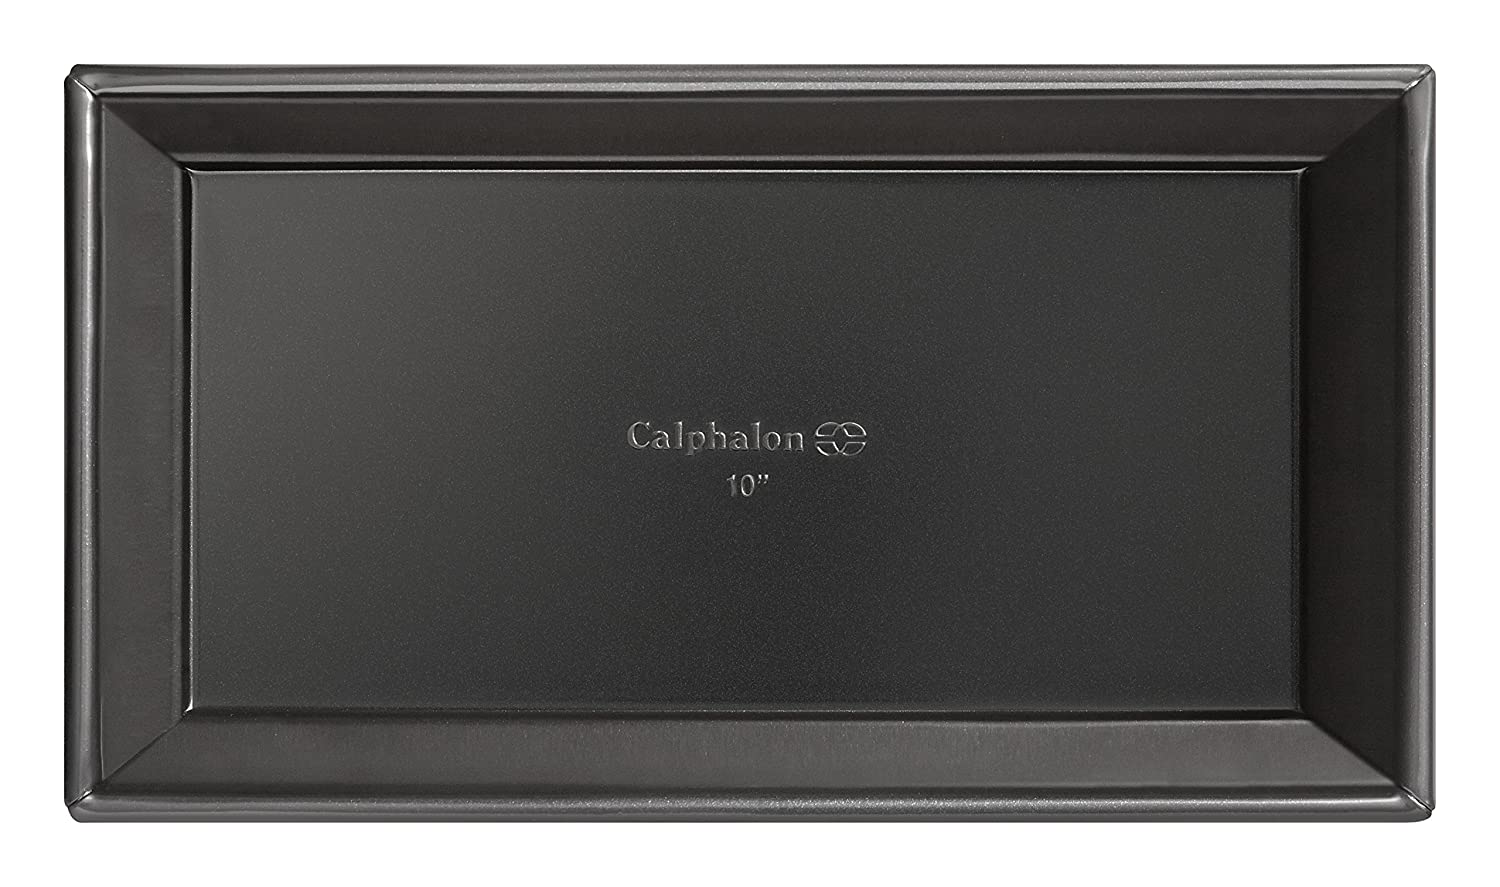 Loaf Pan Calphalon Signature Nonstick Bakeware 5-in x 10-in 2000609